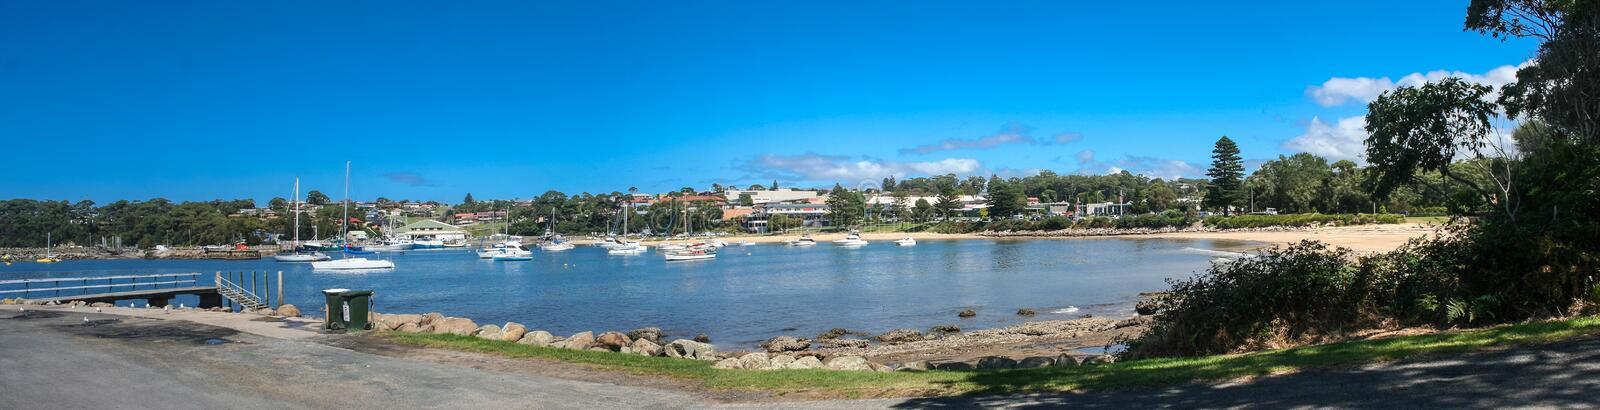 Boats on Ulladulla Harbour New South Wales. Panoramic scene of boats on Harbor with boats on calm clear blue water. Ulladulla, New South Wales, South Coast stock images